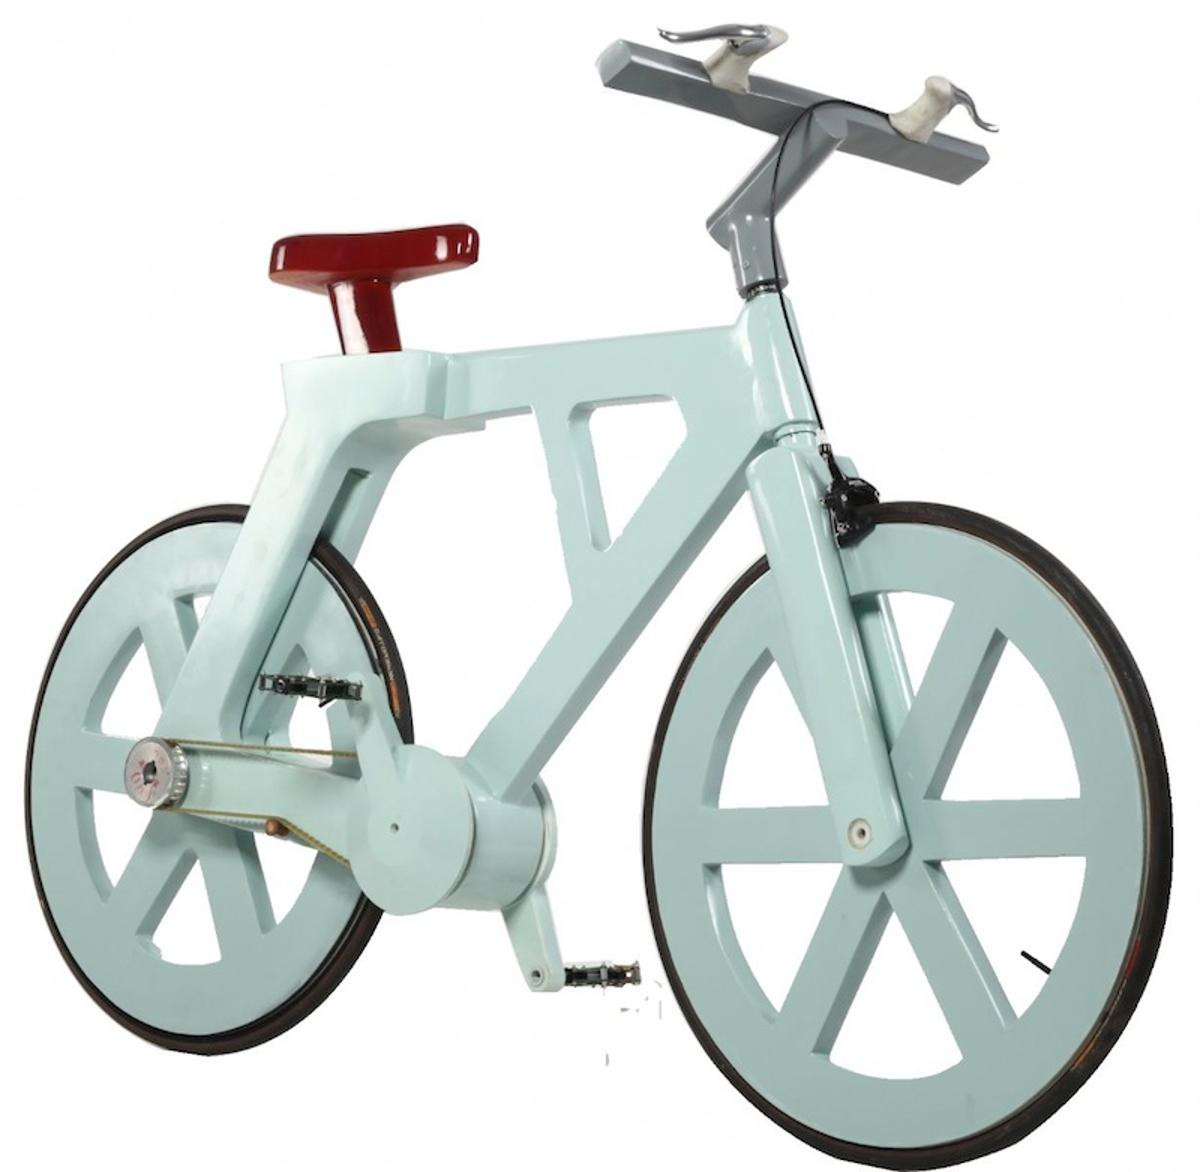 The cardboard bike can support a rider who weighs up to 220 kilograms (485 pounds), and it won't fall apart in the rain